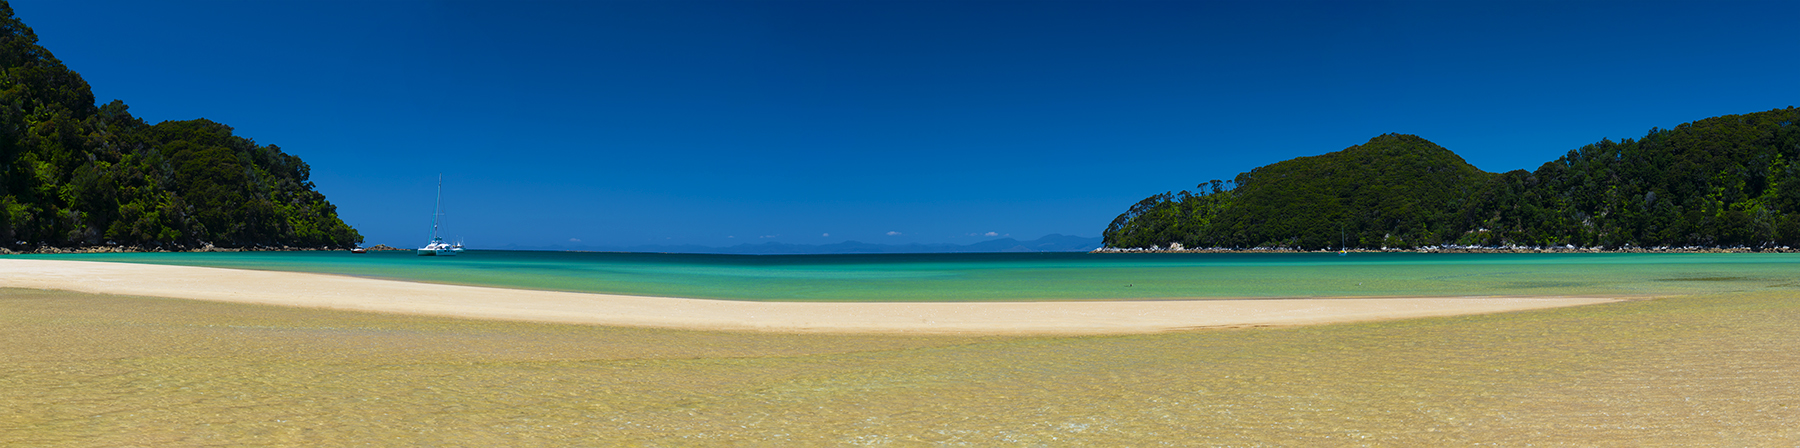 Bark Bay, New Zealand. A Limited Edition Fine Art Landscape Photograph by Richard Hume